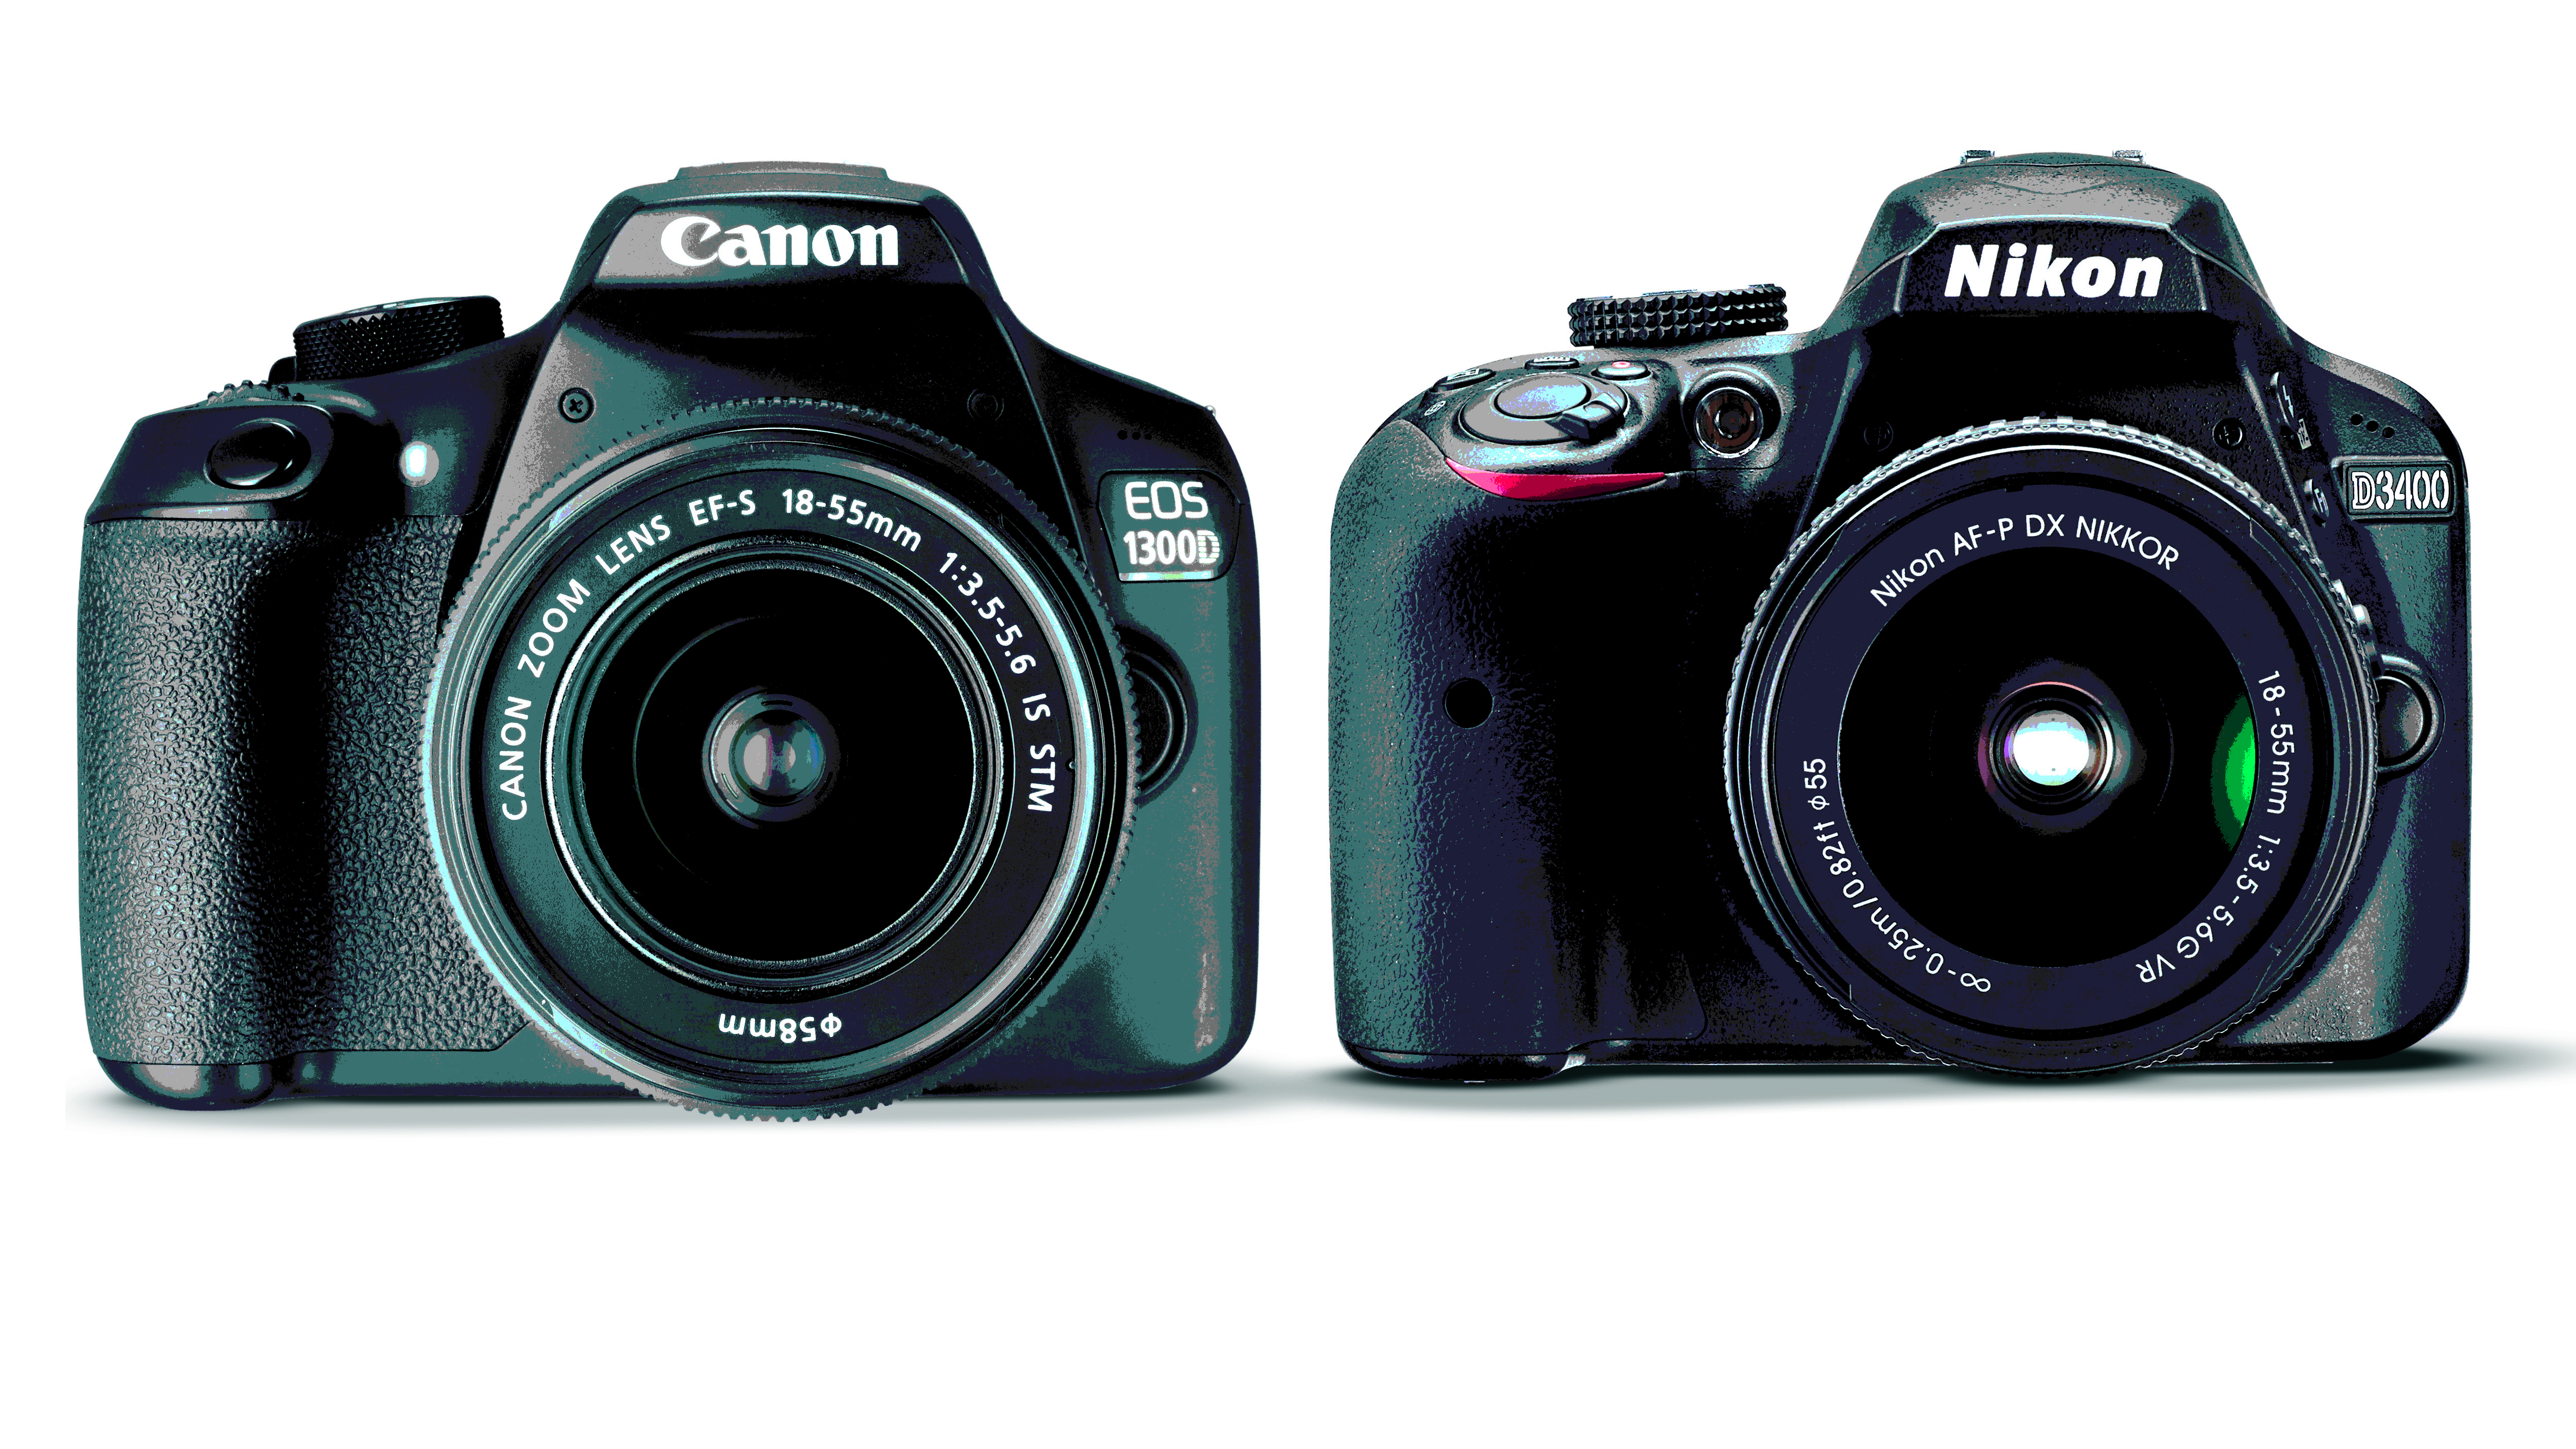 Canon EOS 1300D vs Nikon D3400: Which one should you buy